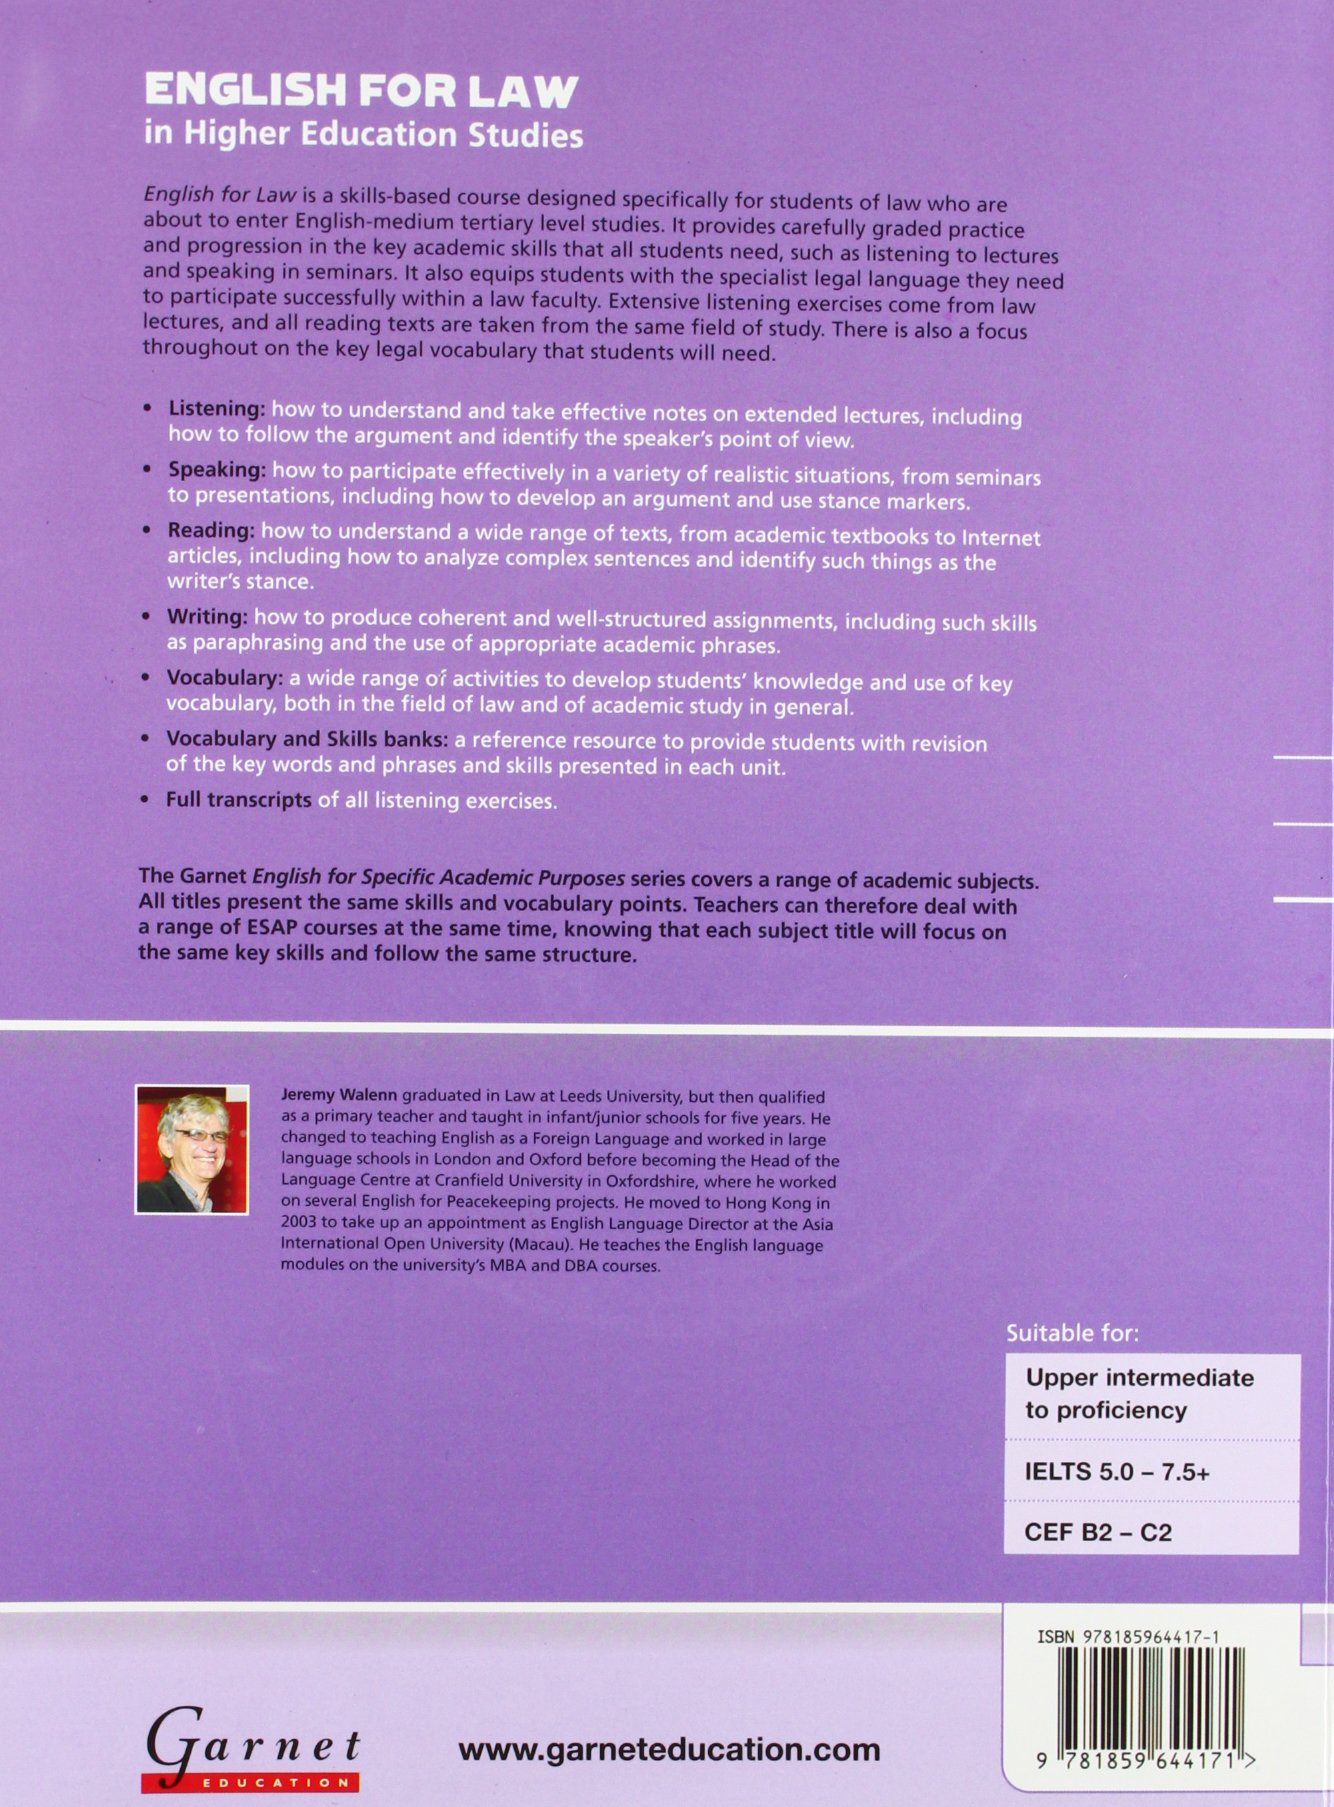 English for Law Course Book + Audio CDs (English for Specific Academic Purposes) by Garnet Education